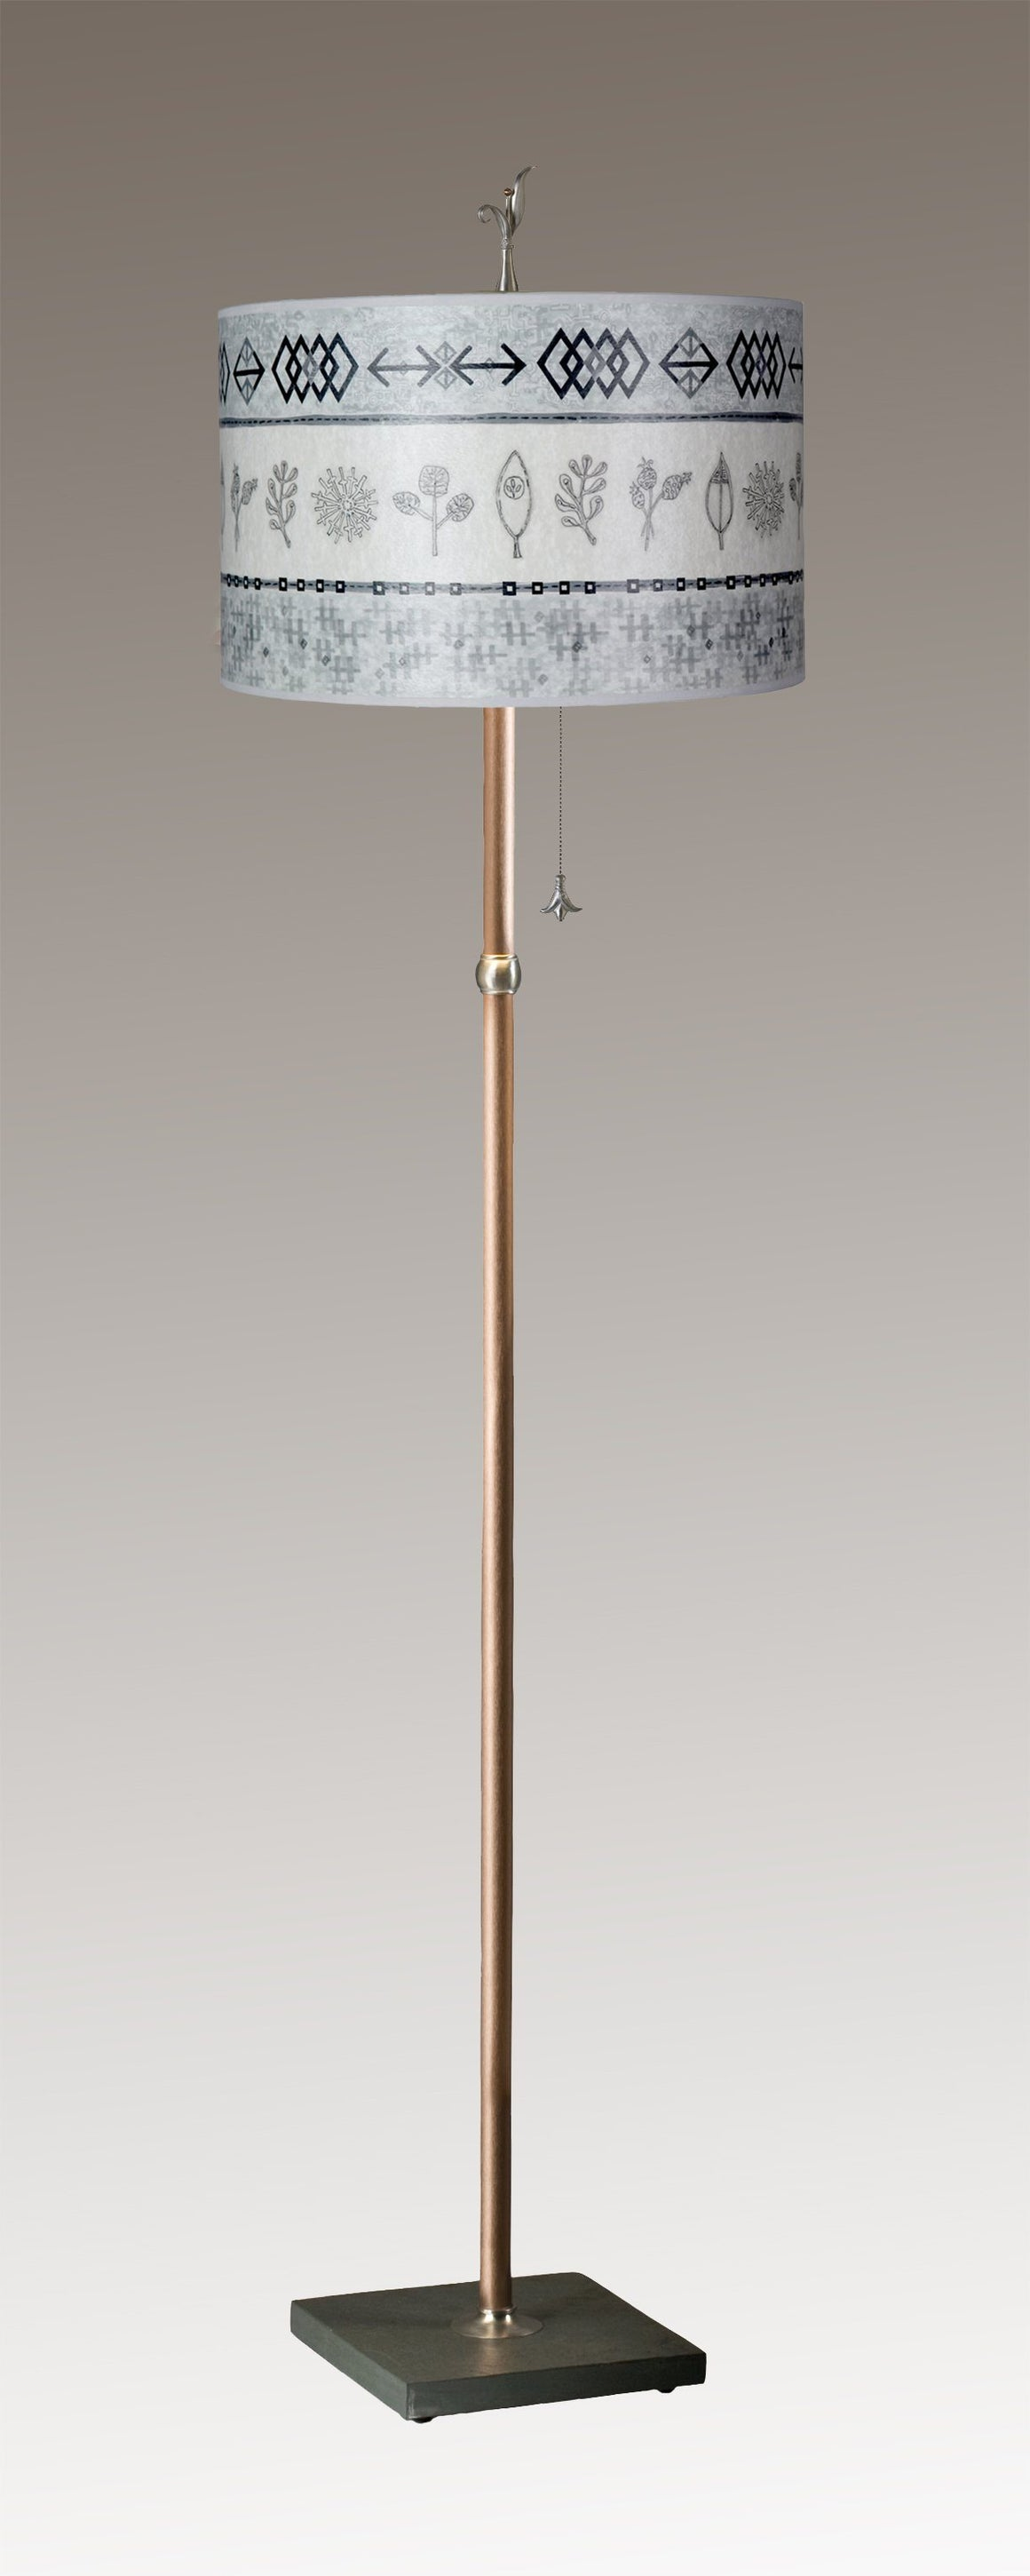 Copper Floor Lamp on Vermont Slate with Large Drum Shade in Woven & Sprig in Mist